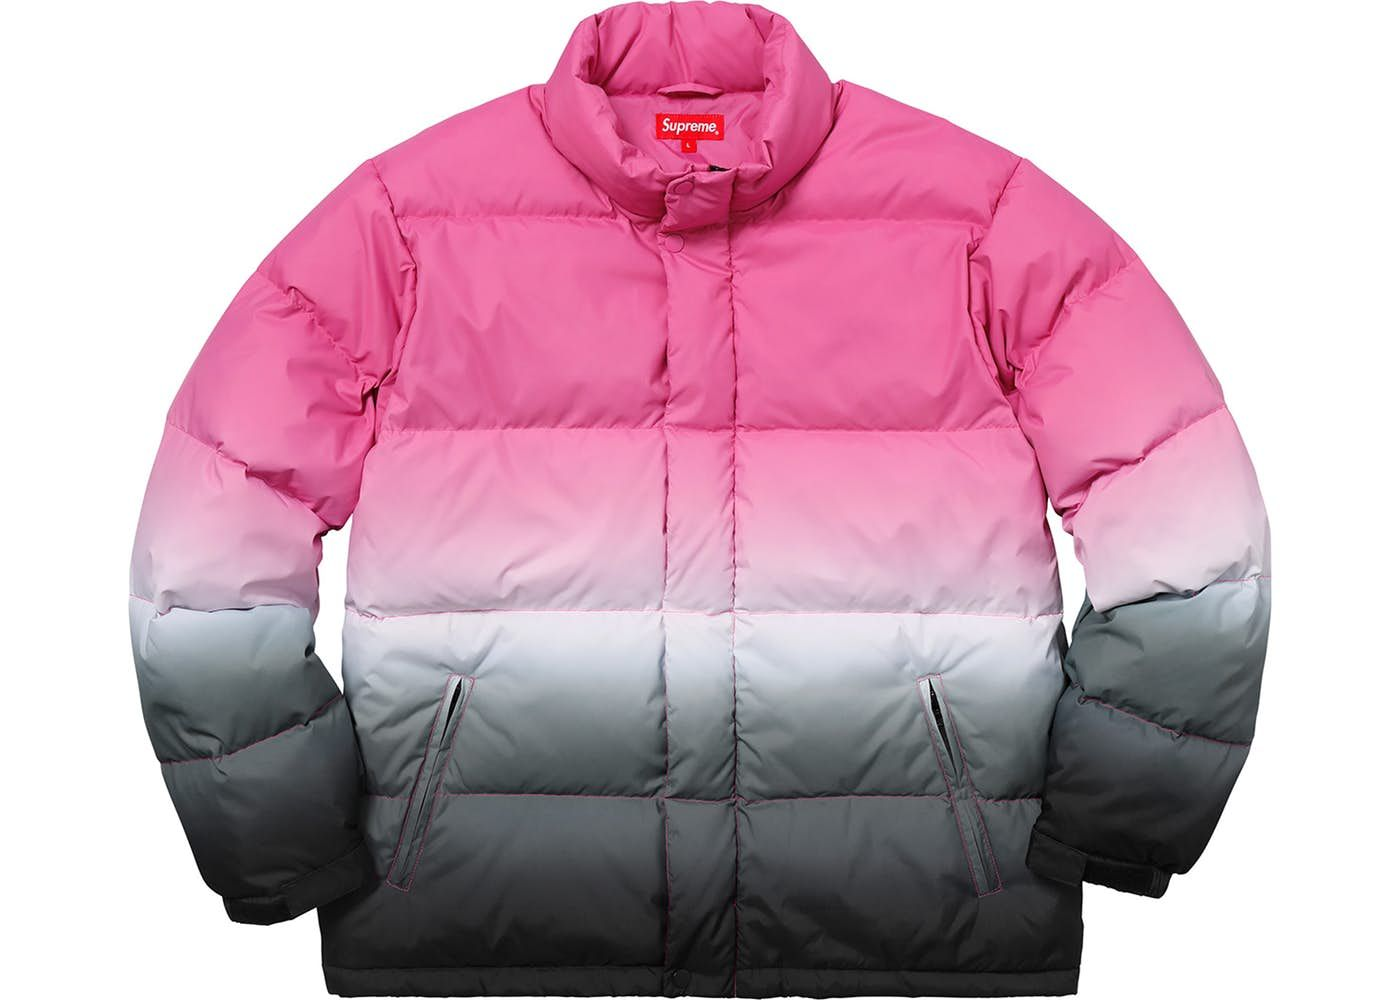 244bf013 Supreme Gradient Puffy Jacket Pink in 2019 | Style>Coats | Puffy ...